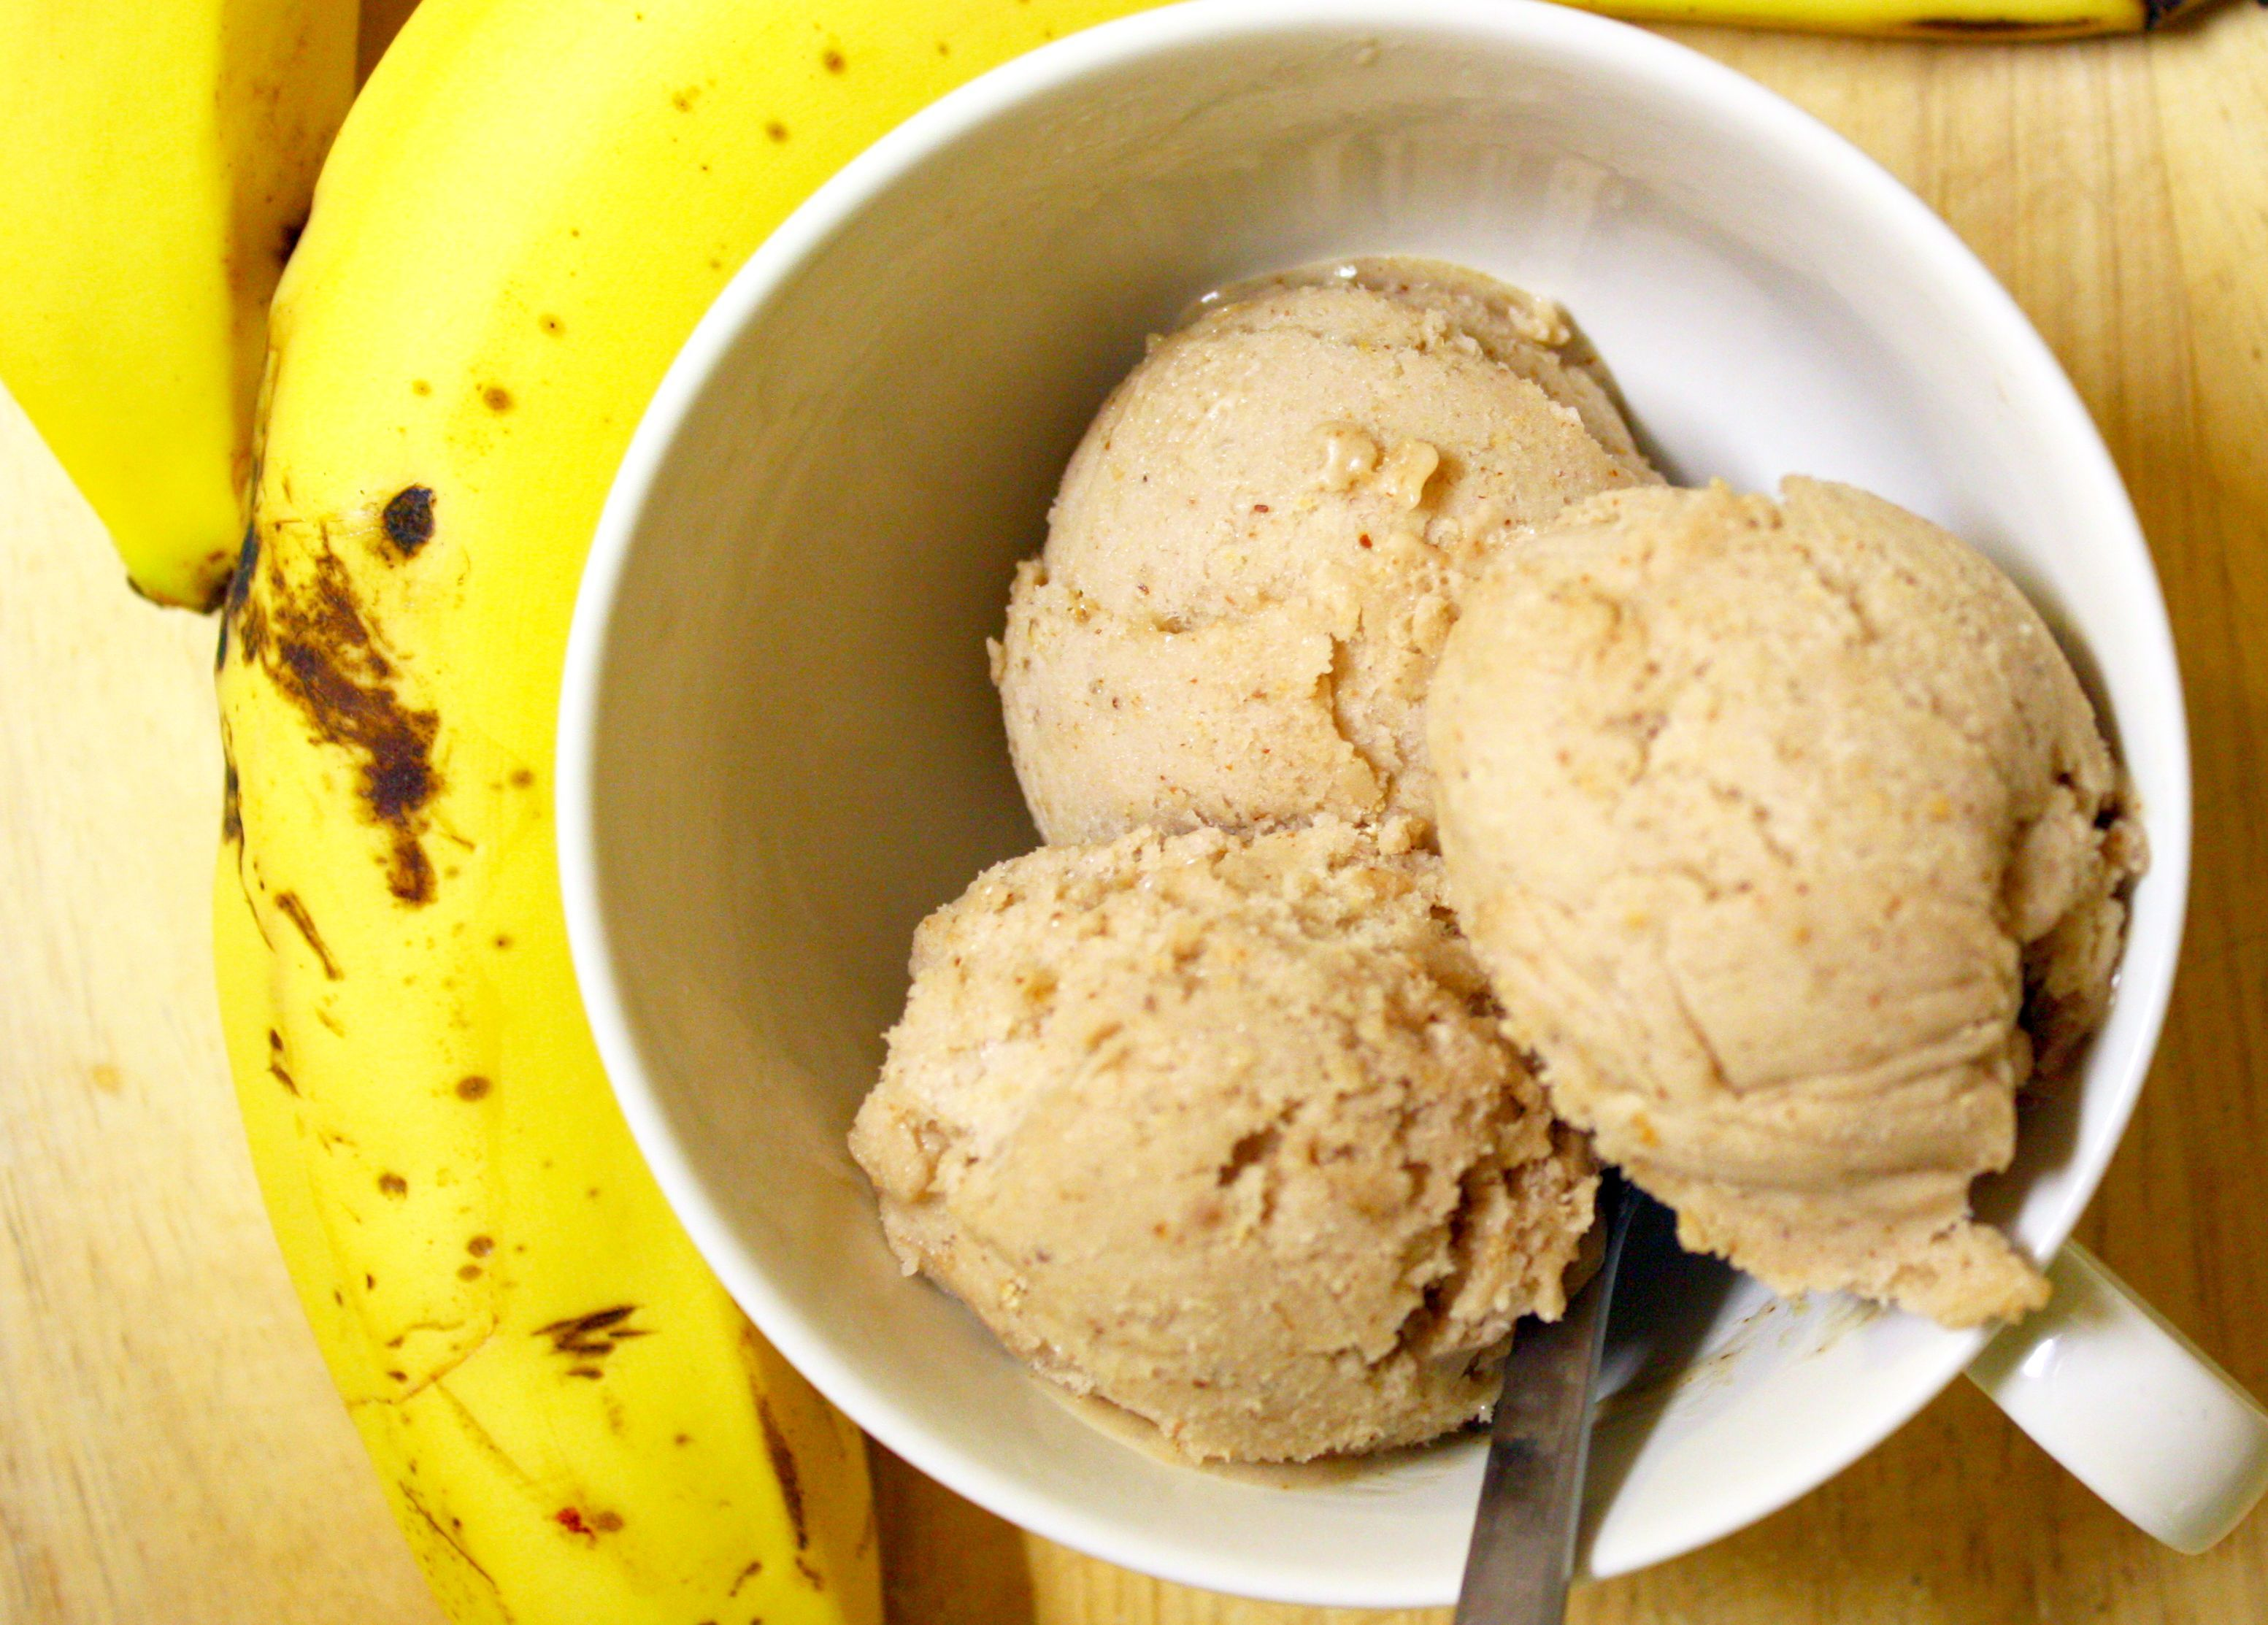 3-Ingredient PB&J Banana Ice Cream